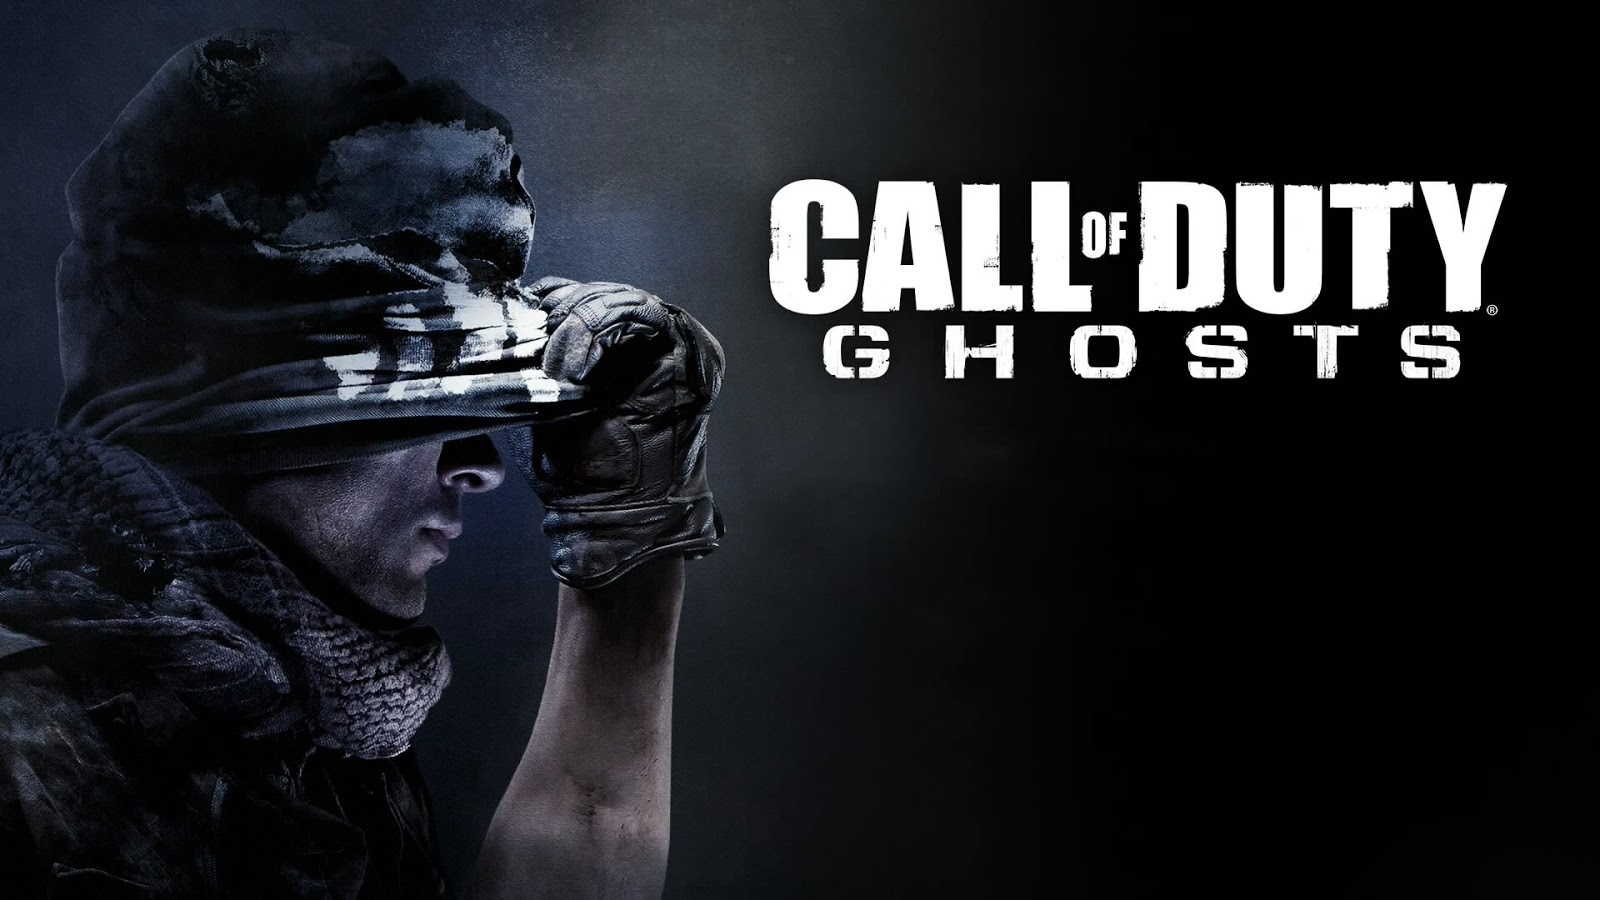 Call Of Duty Ghosts Developer Gives Reasons For Considering